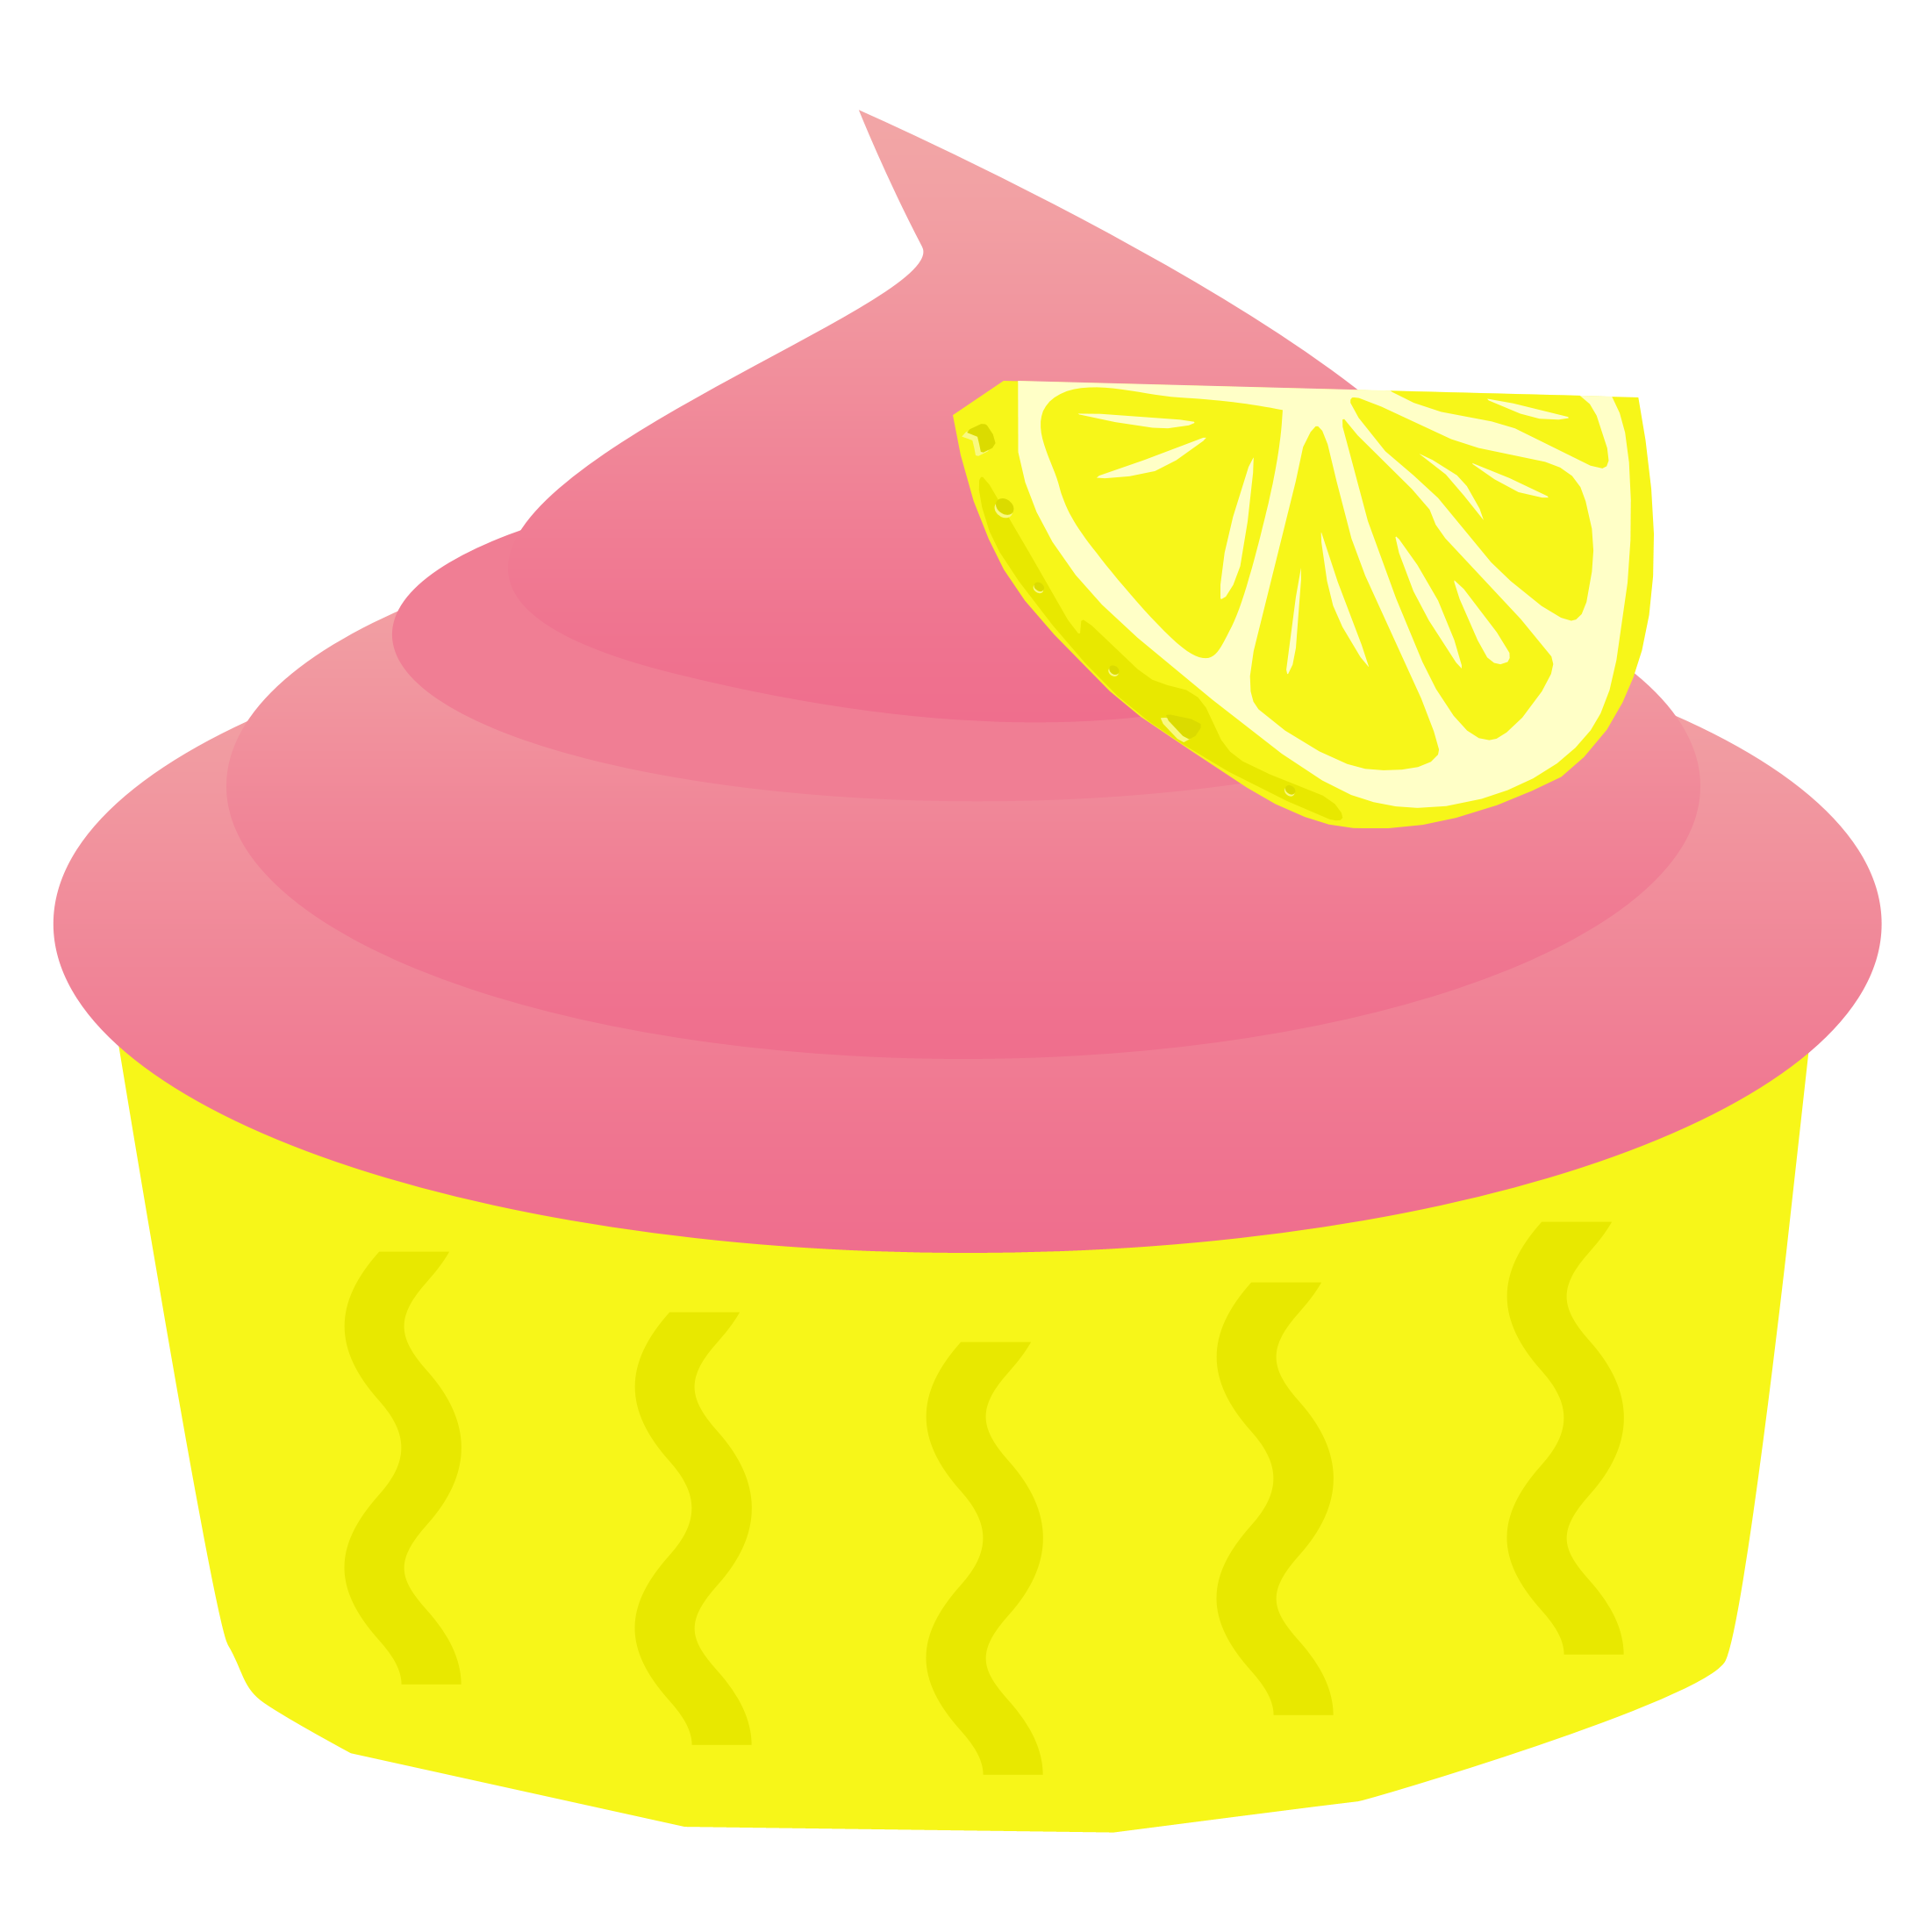 Birthday at getdrawings com. Clipart balloon cupcake